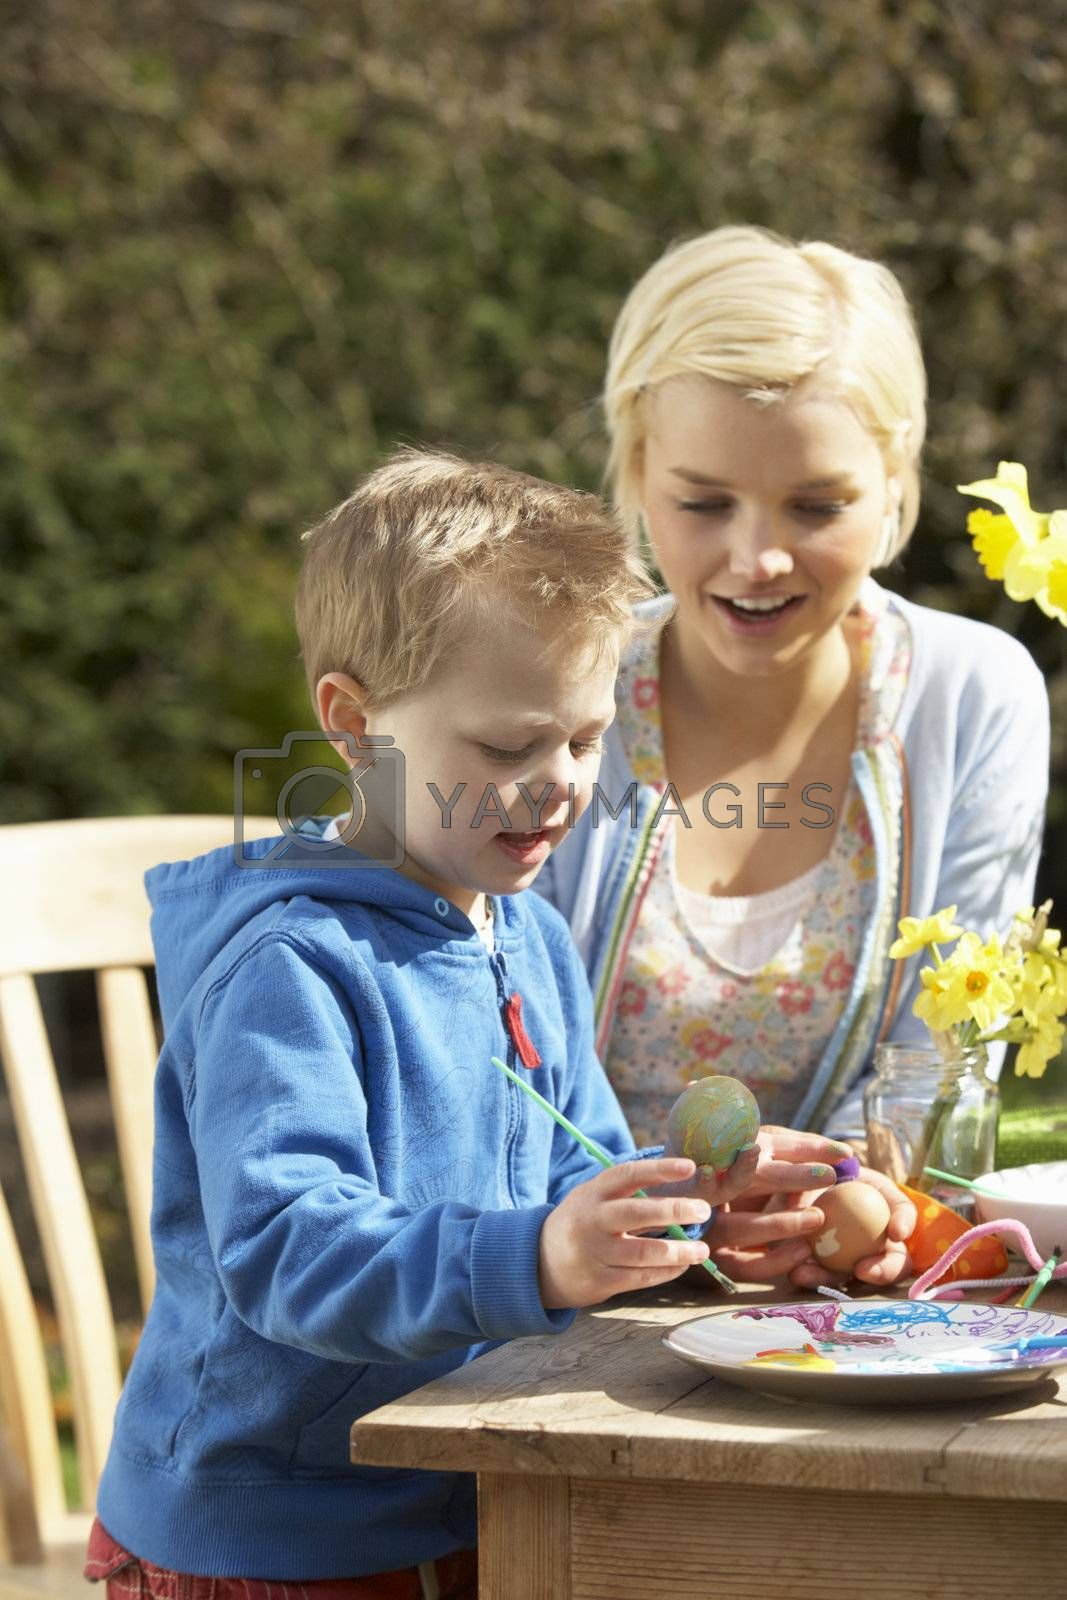 Mother And Son Decorating Easter Eggs On Table Outdoors by OMG Images